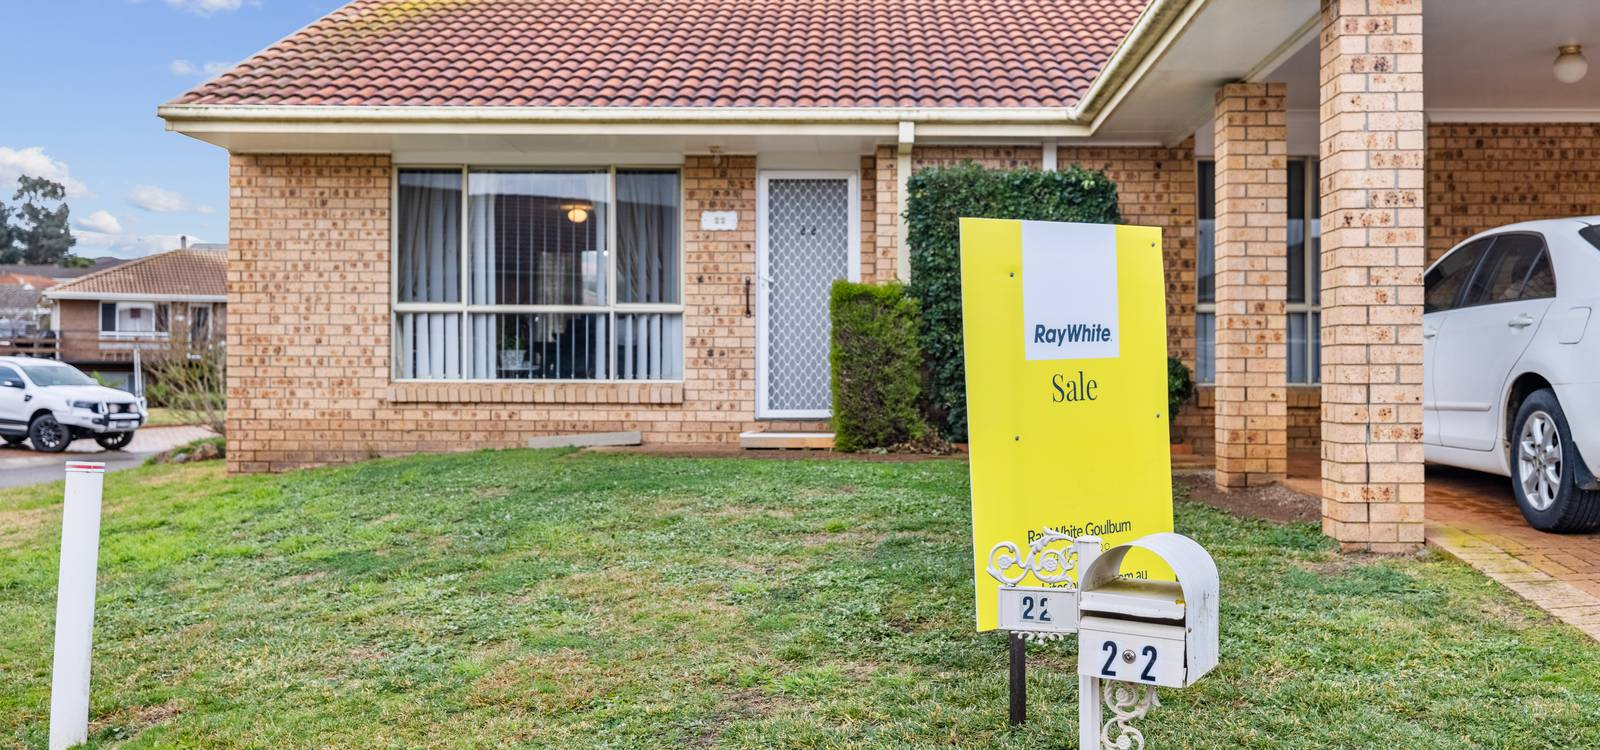 22 Parkside Place GOULBURN, NSW 2580 - photo 1